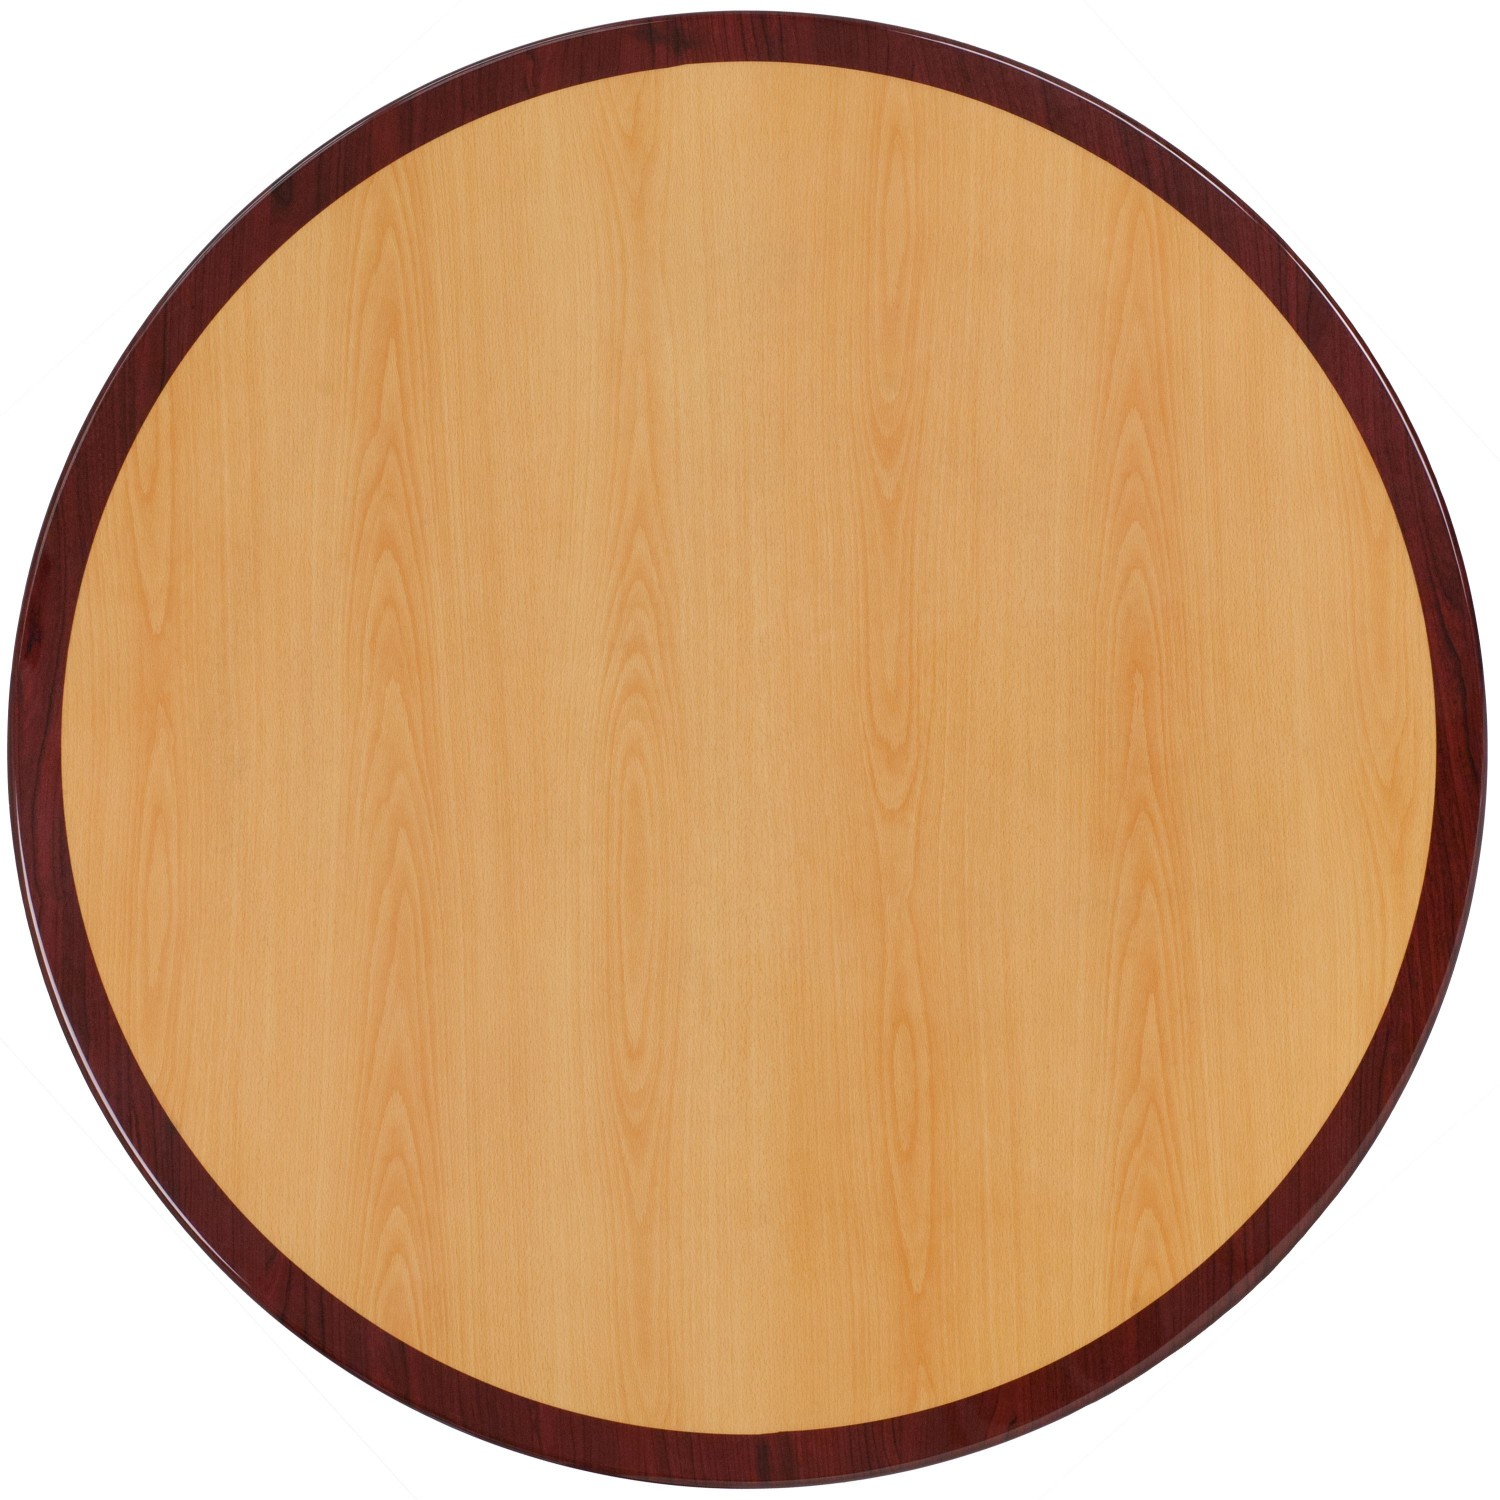 Flash Furniture TP-2TONE-24RD-GG Round Two-Tone Resin Cherry and Mahogany Table Top, 24""